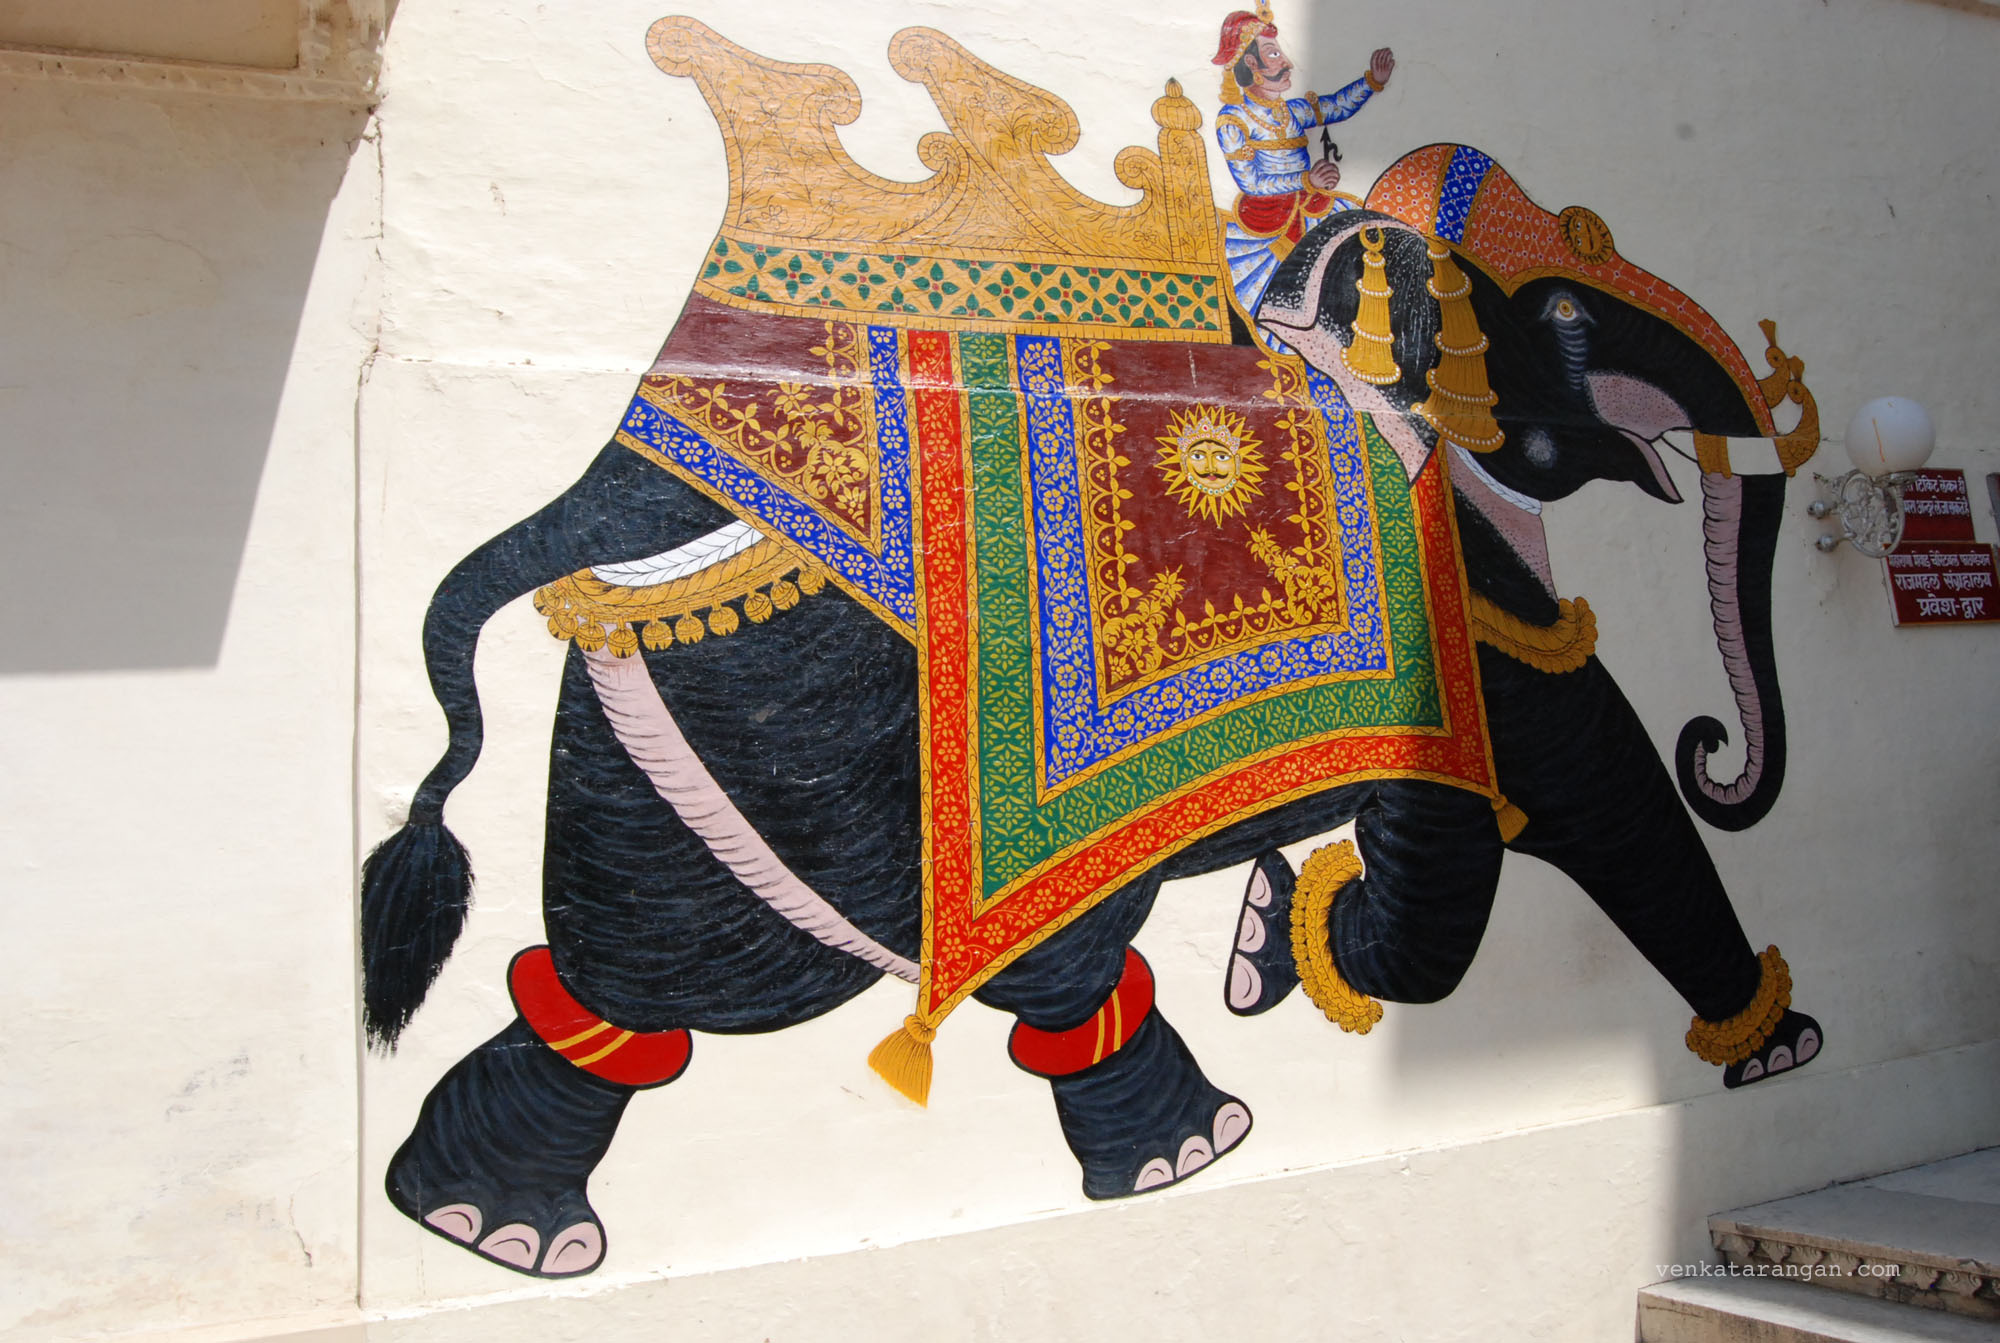 Elephant painting in City palace